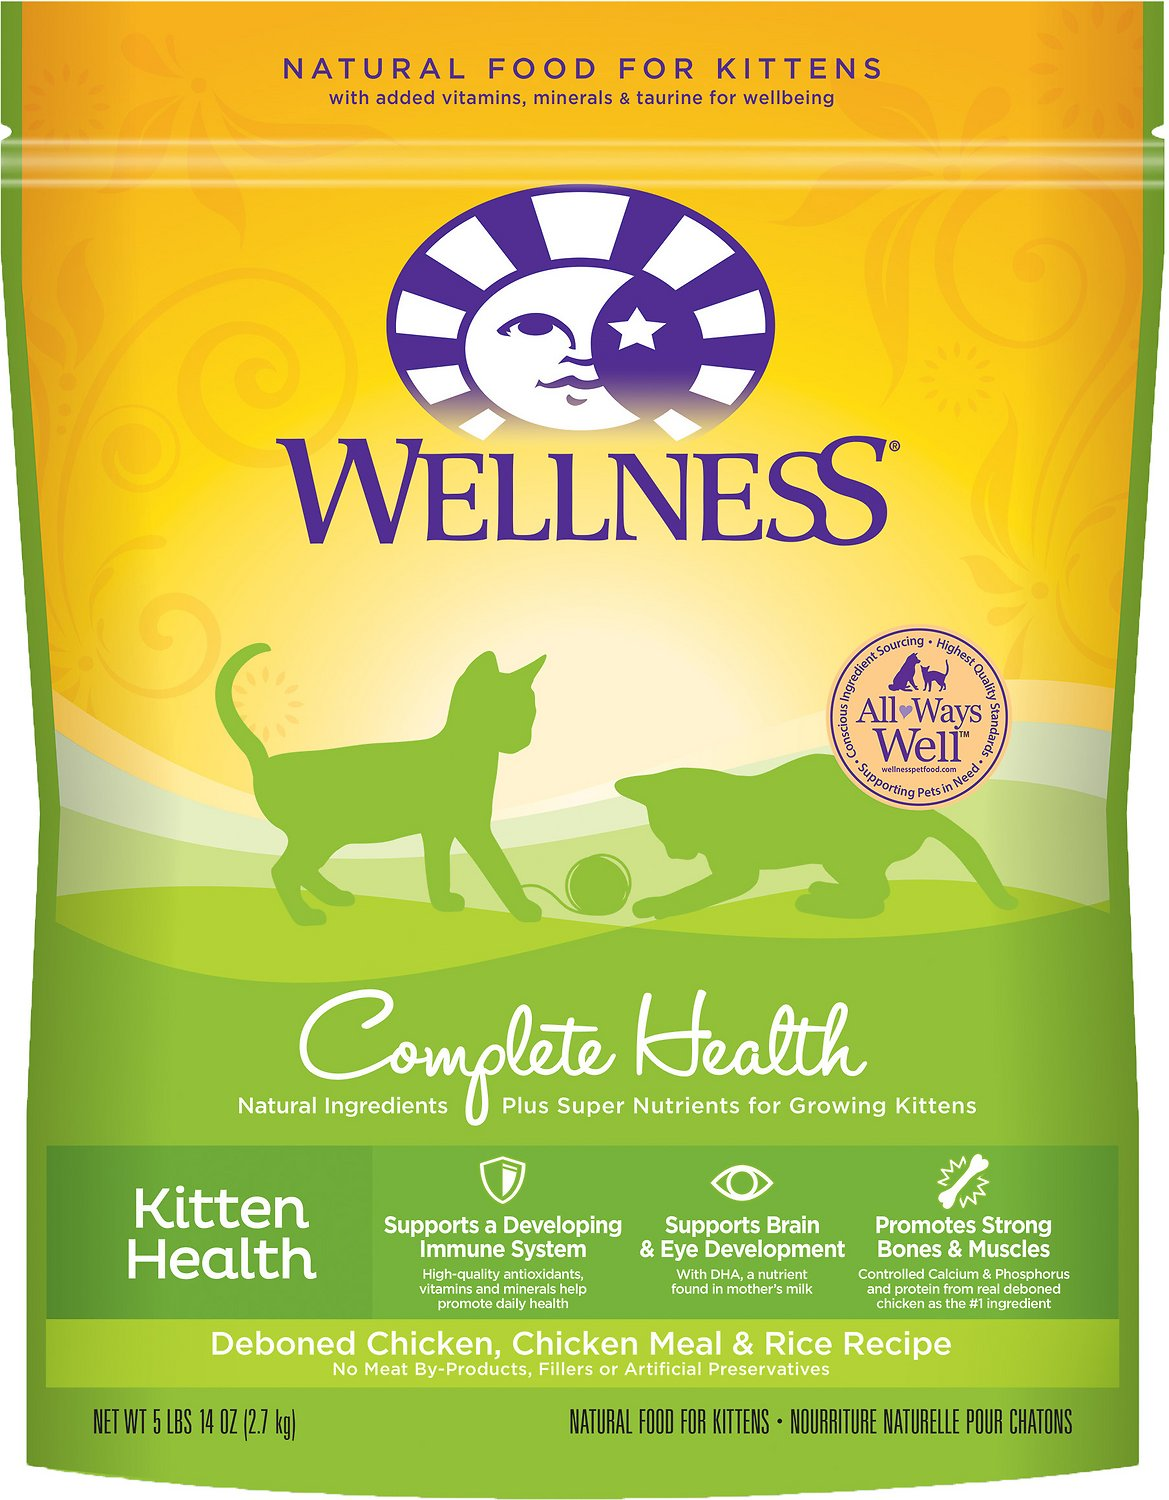 Wellness Kitten Food Food